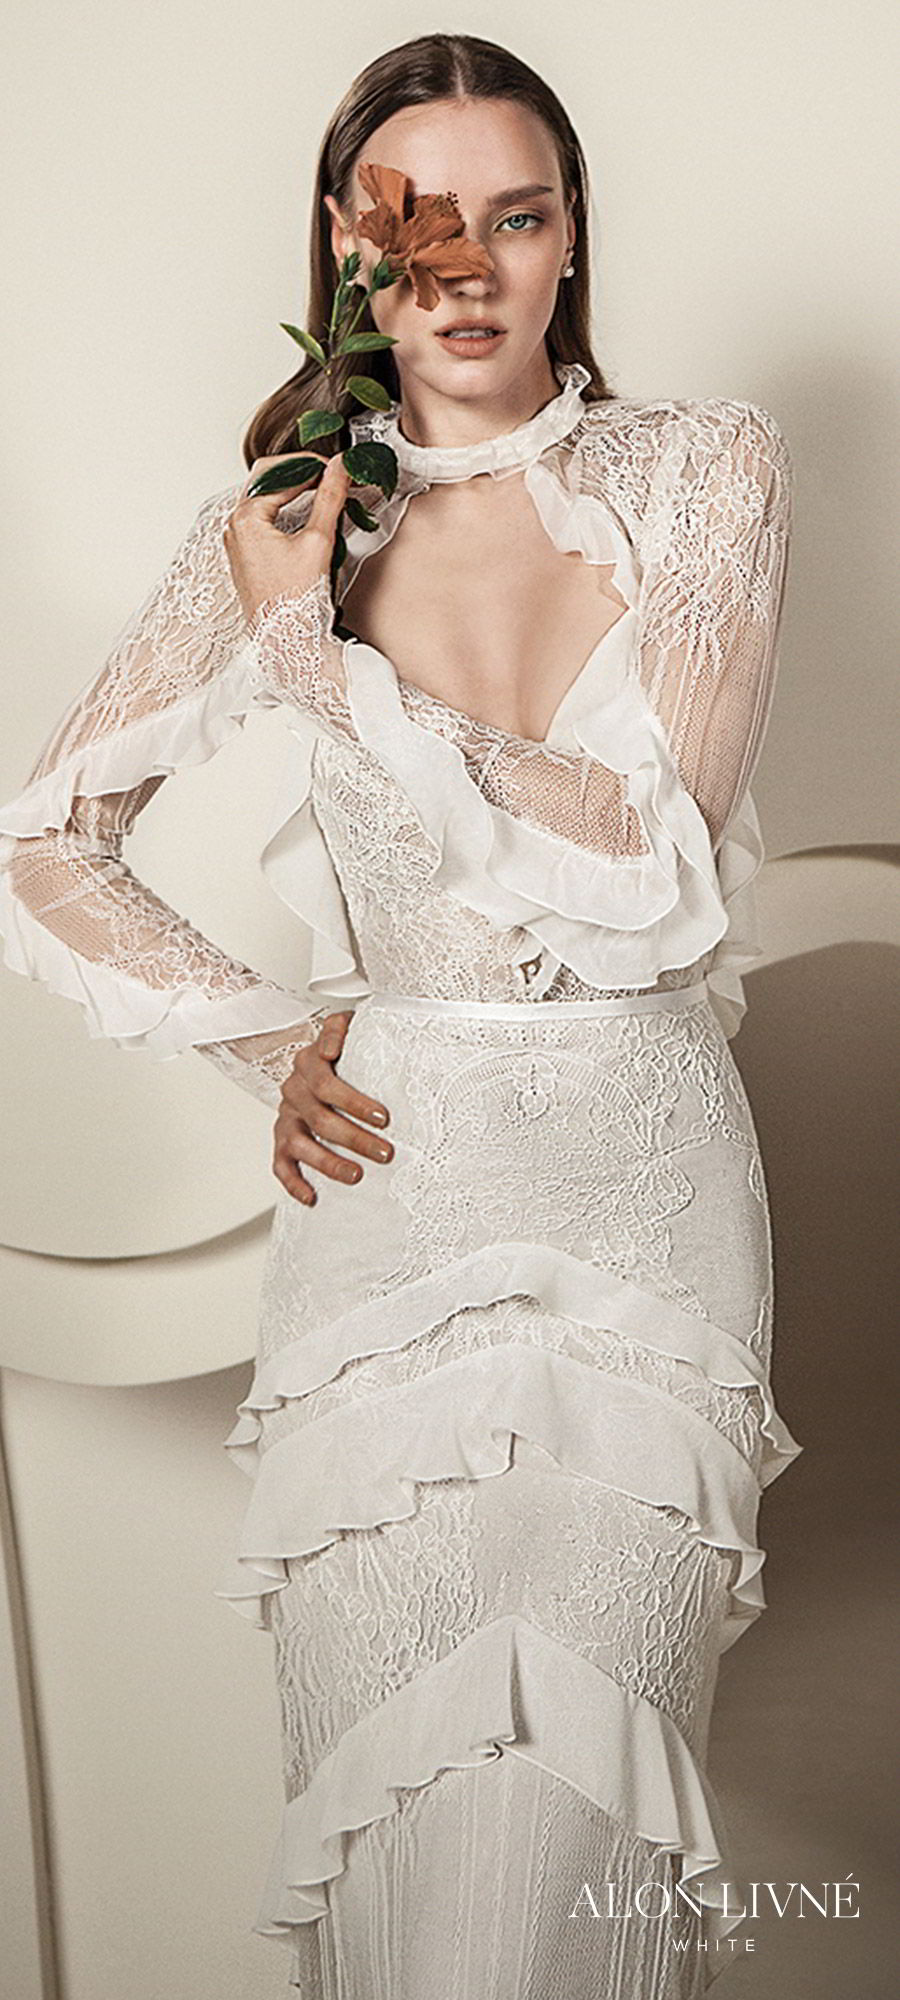 alon livne white spring 2020 bridal illusion long sleeves ruffle v neck column sheath lace wedding dress ruffle skirt (billie) romantic boho chic mv